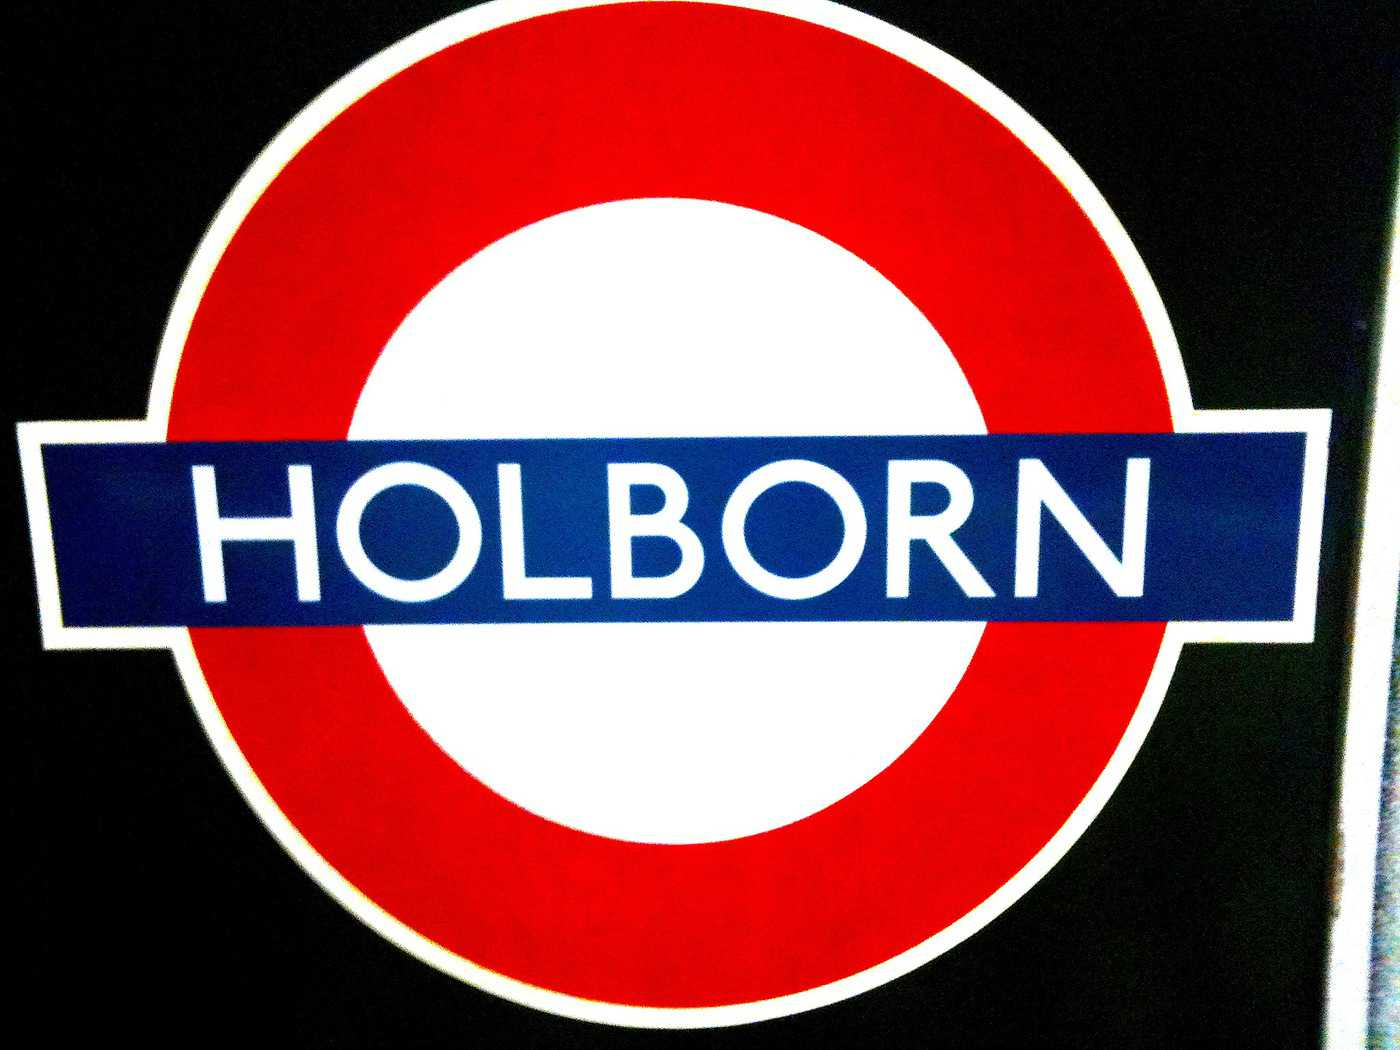 Holborn Tube Station sign howdoyousaythatword